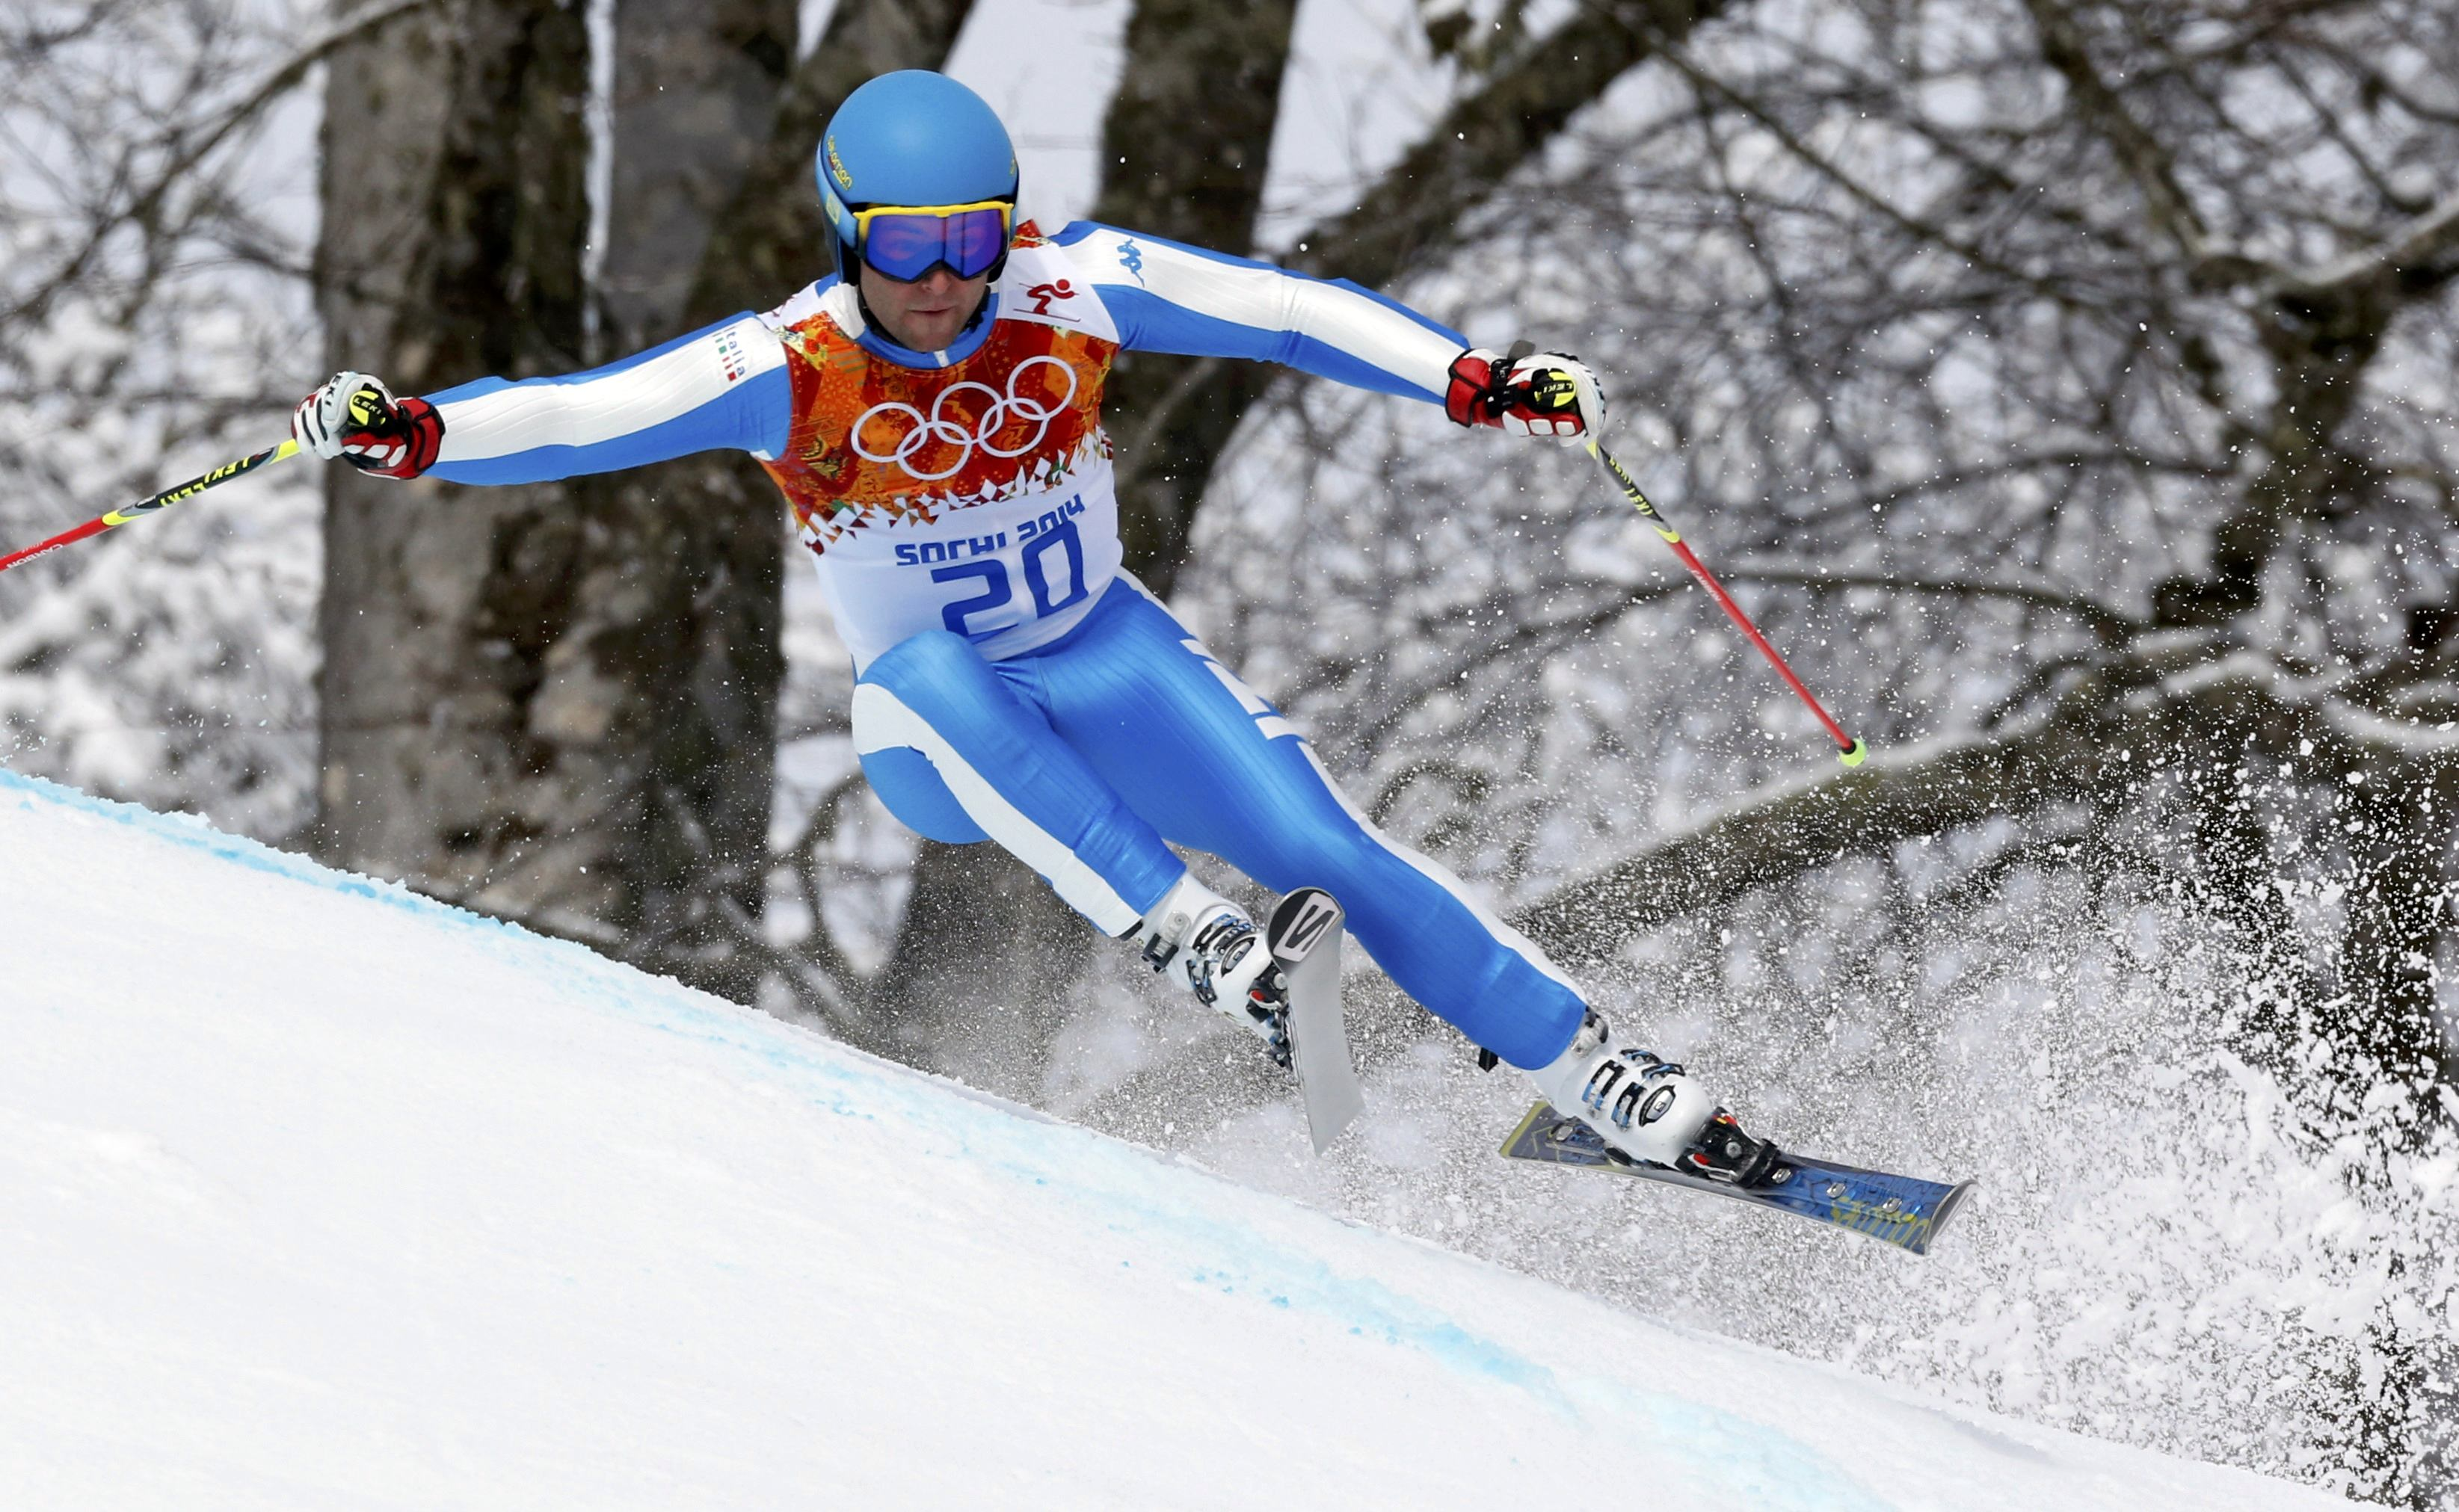 Sochi Olympics Day 14: Injury ends games for Bode Miller ...